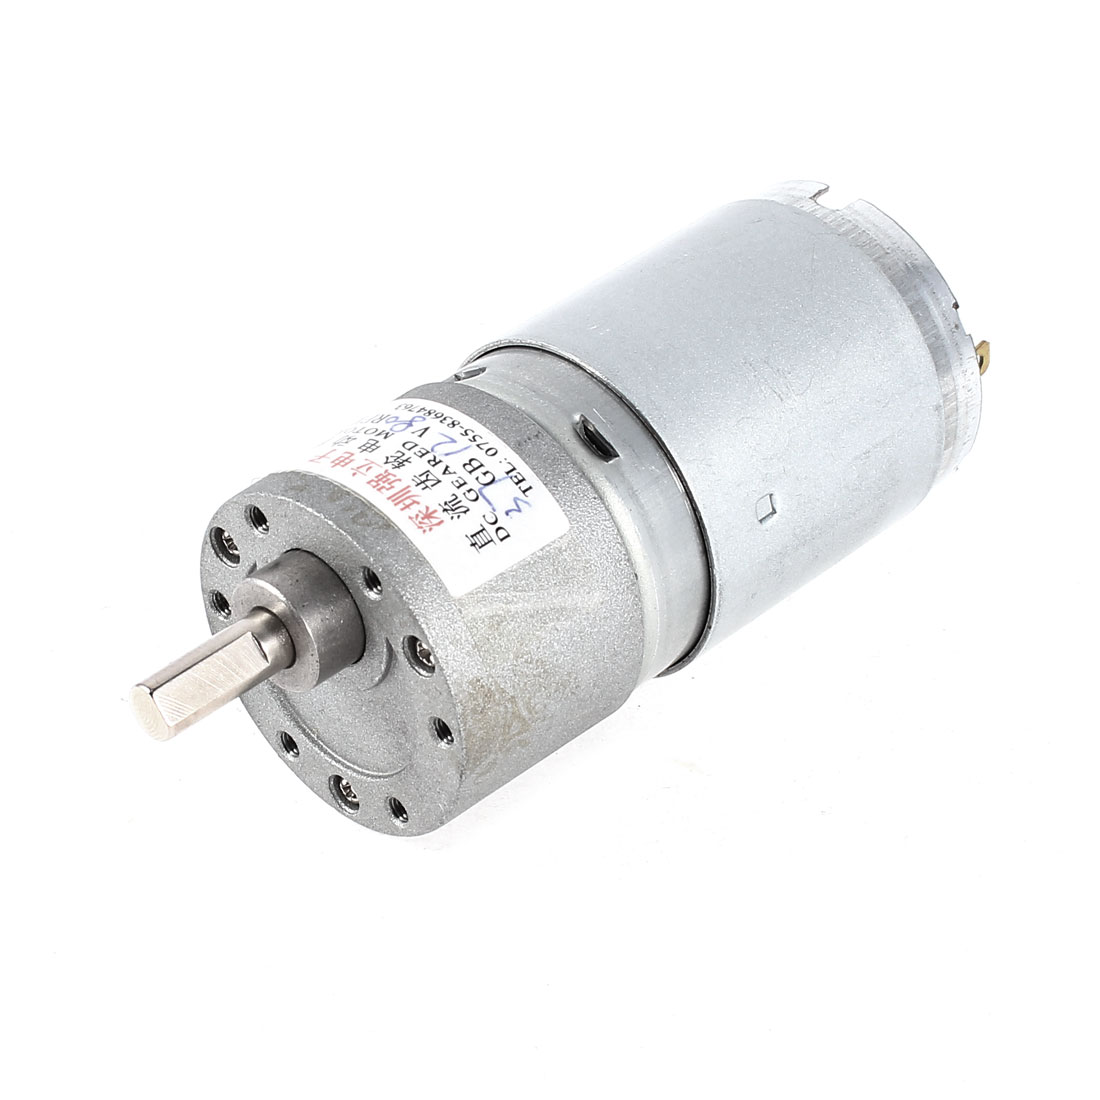 DC 12V 80RPM 6mm Diameter Shaft Cylinder Electric Geared Box Speed Reduce Motor